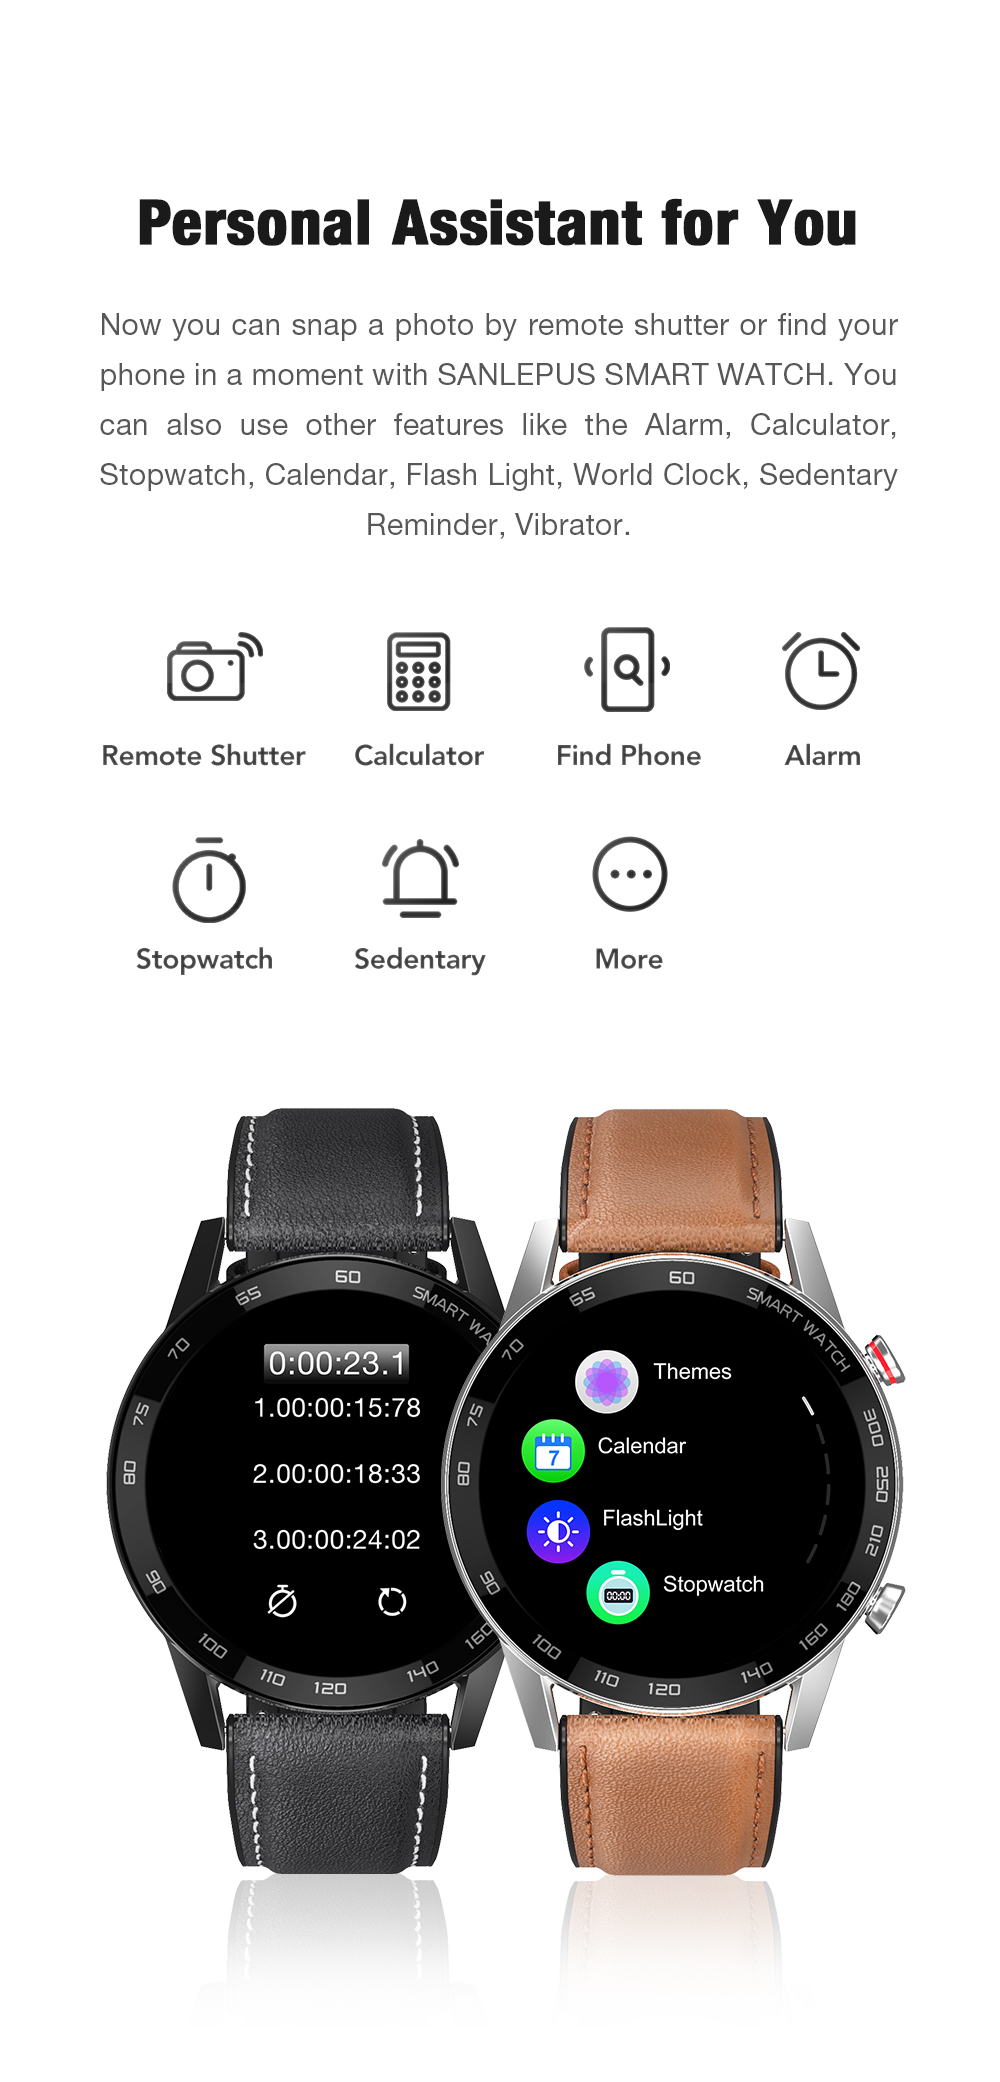 Hb386a6c0da9d459e9a7df0b6814b8d5b1 2021 SANLEPUS ECG Smart Watch Dial Call Smartwatch Men Sport Fitness Bracelet Clock Watches For Android Apple Xiaomi